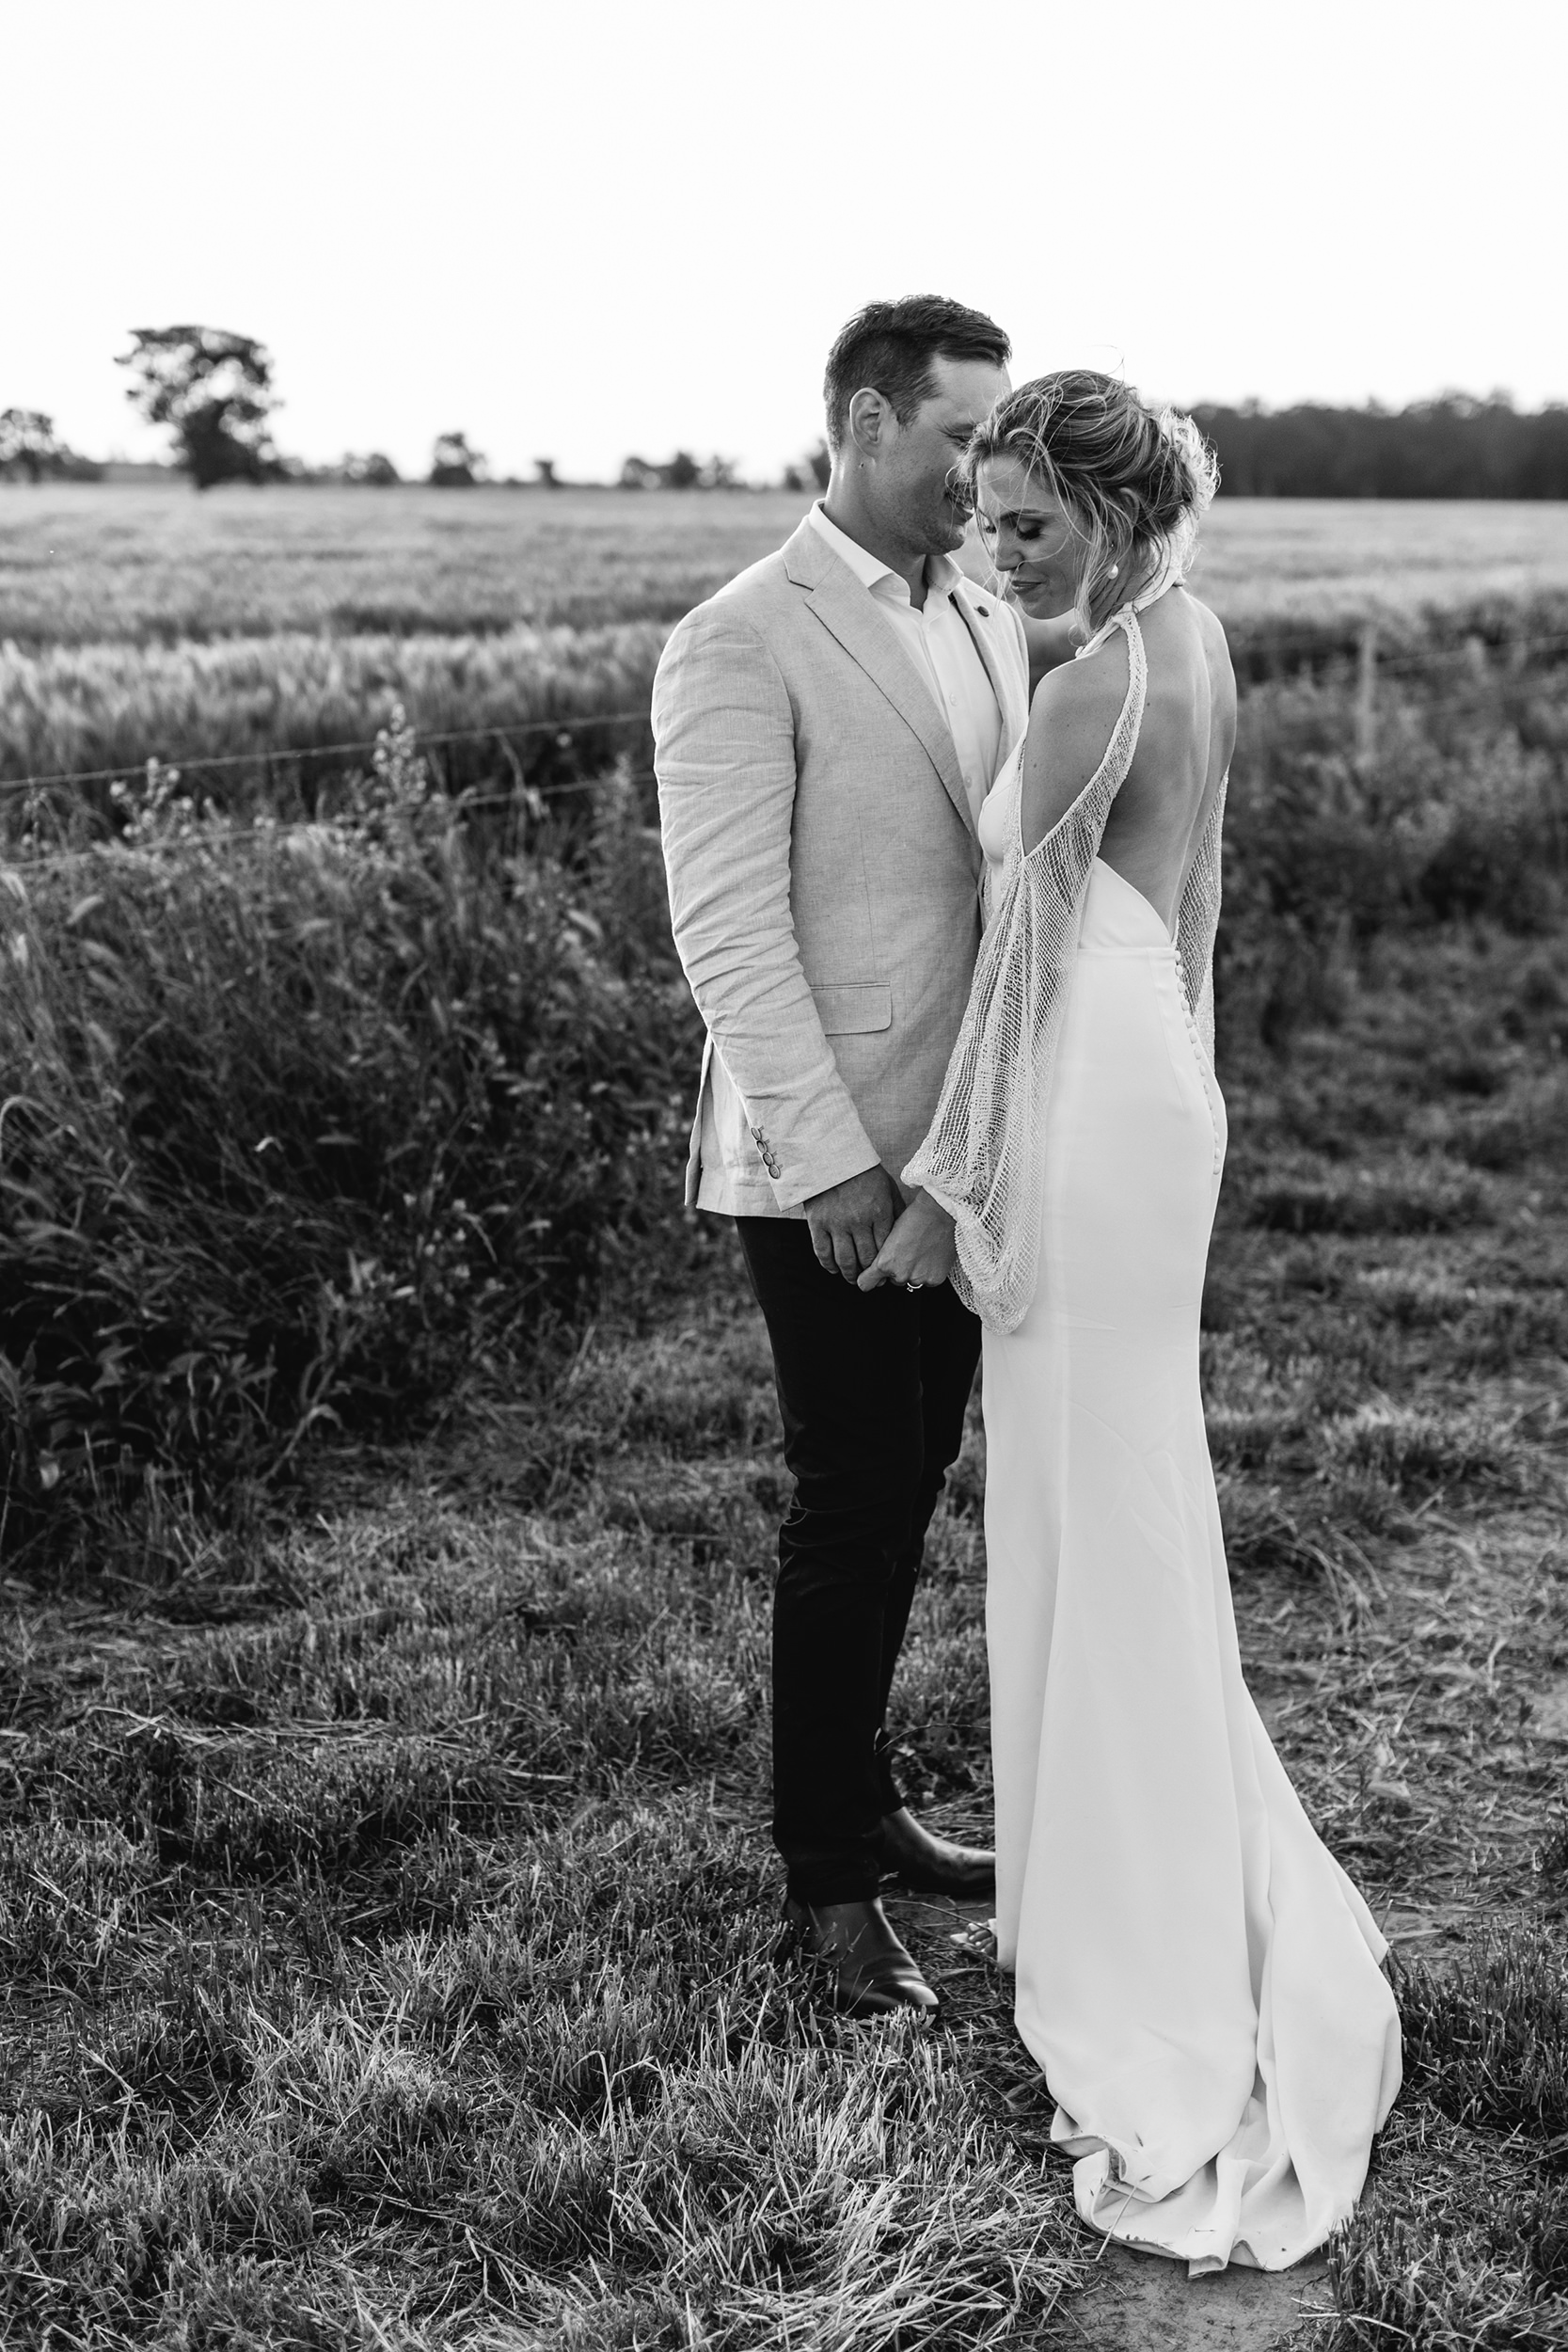 Tilly Clifford Couple Field Sunset Black and White Wedding